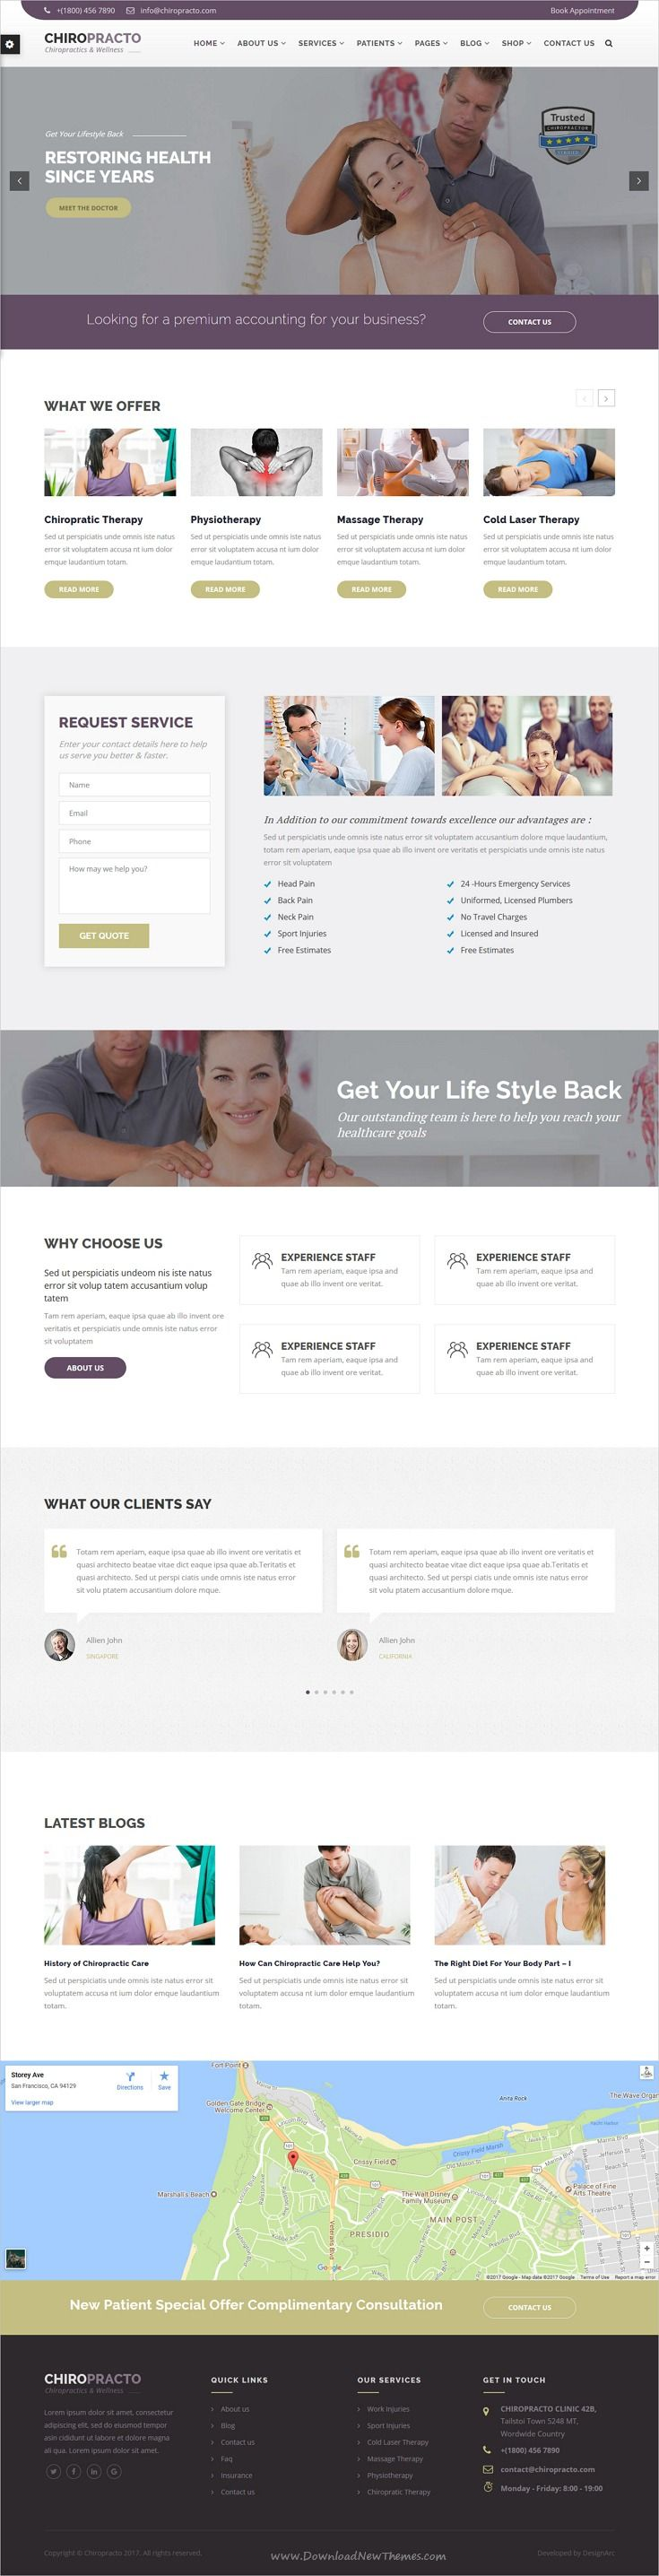 Chiropracto Is Clean And Modern Design 5in1 Responsive Wordpress Theme For Rehabilitation Healthcare Website Therapy Website Design Website Design Wordpress